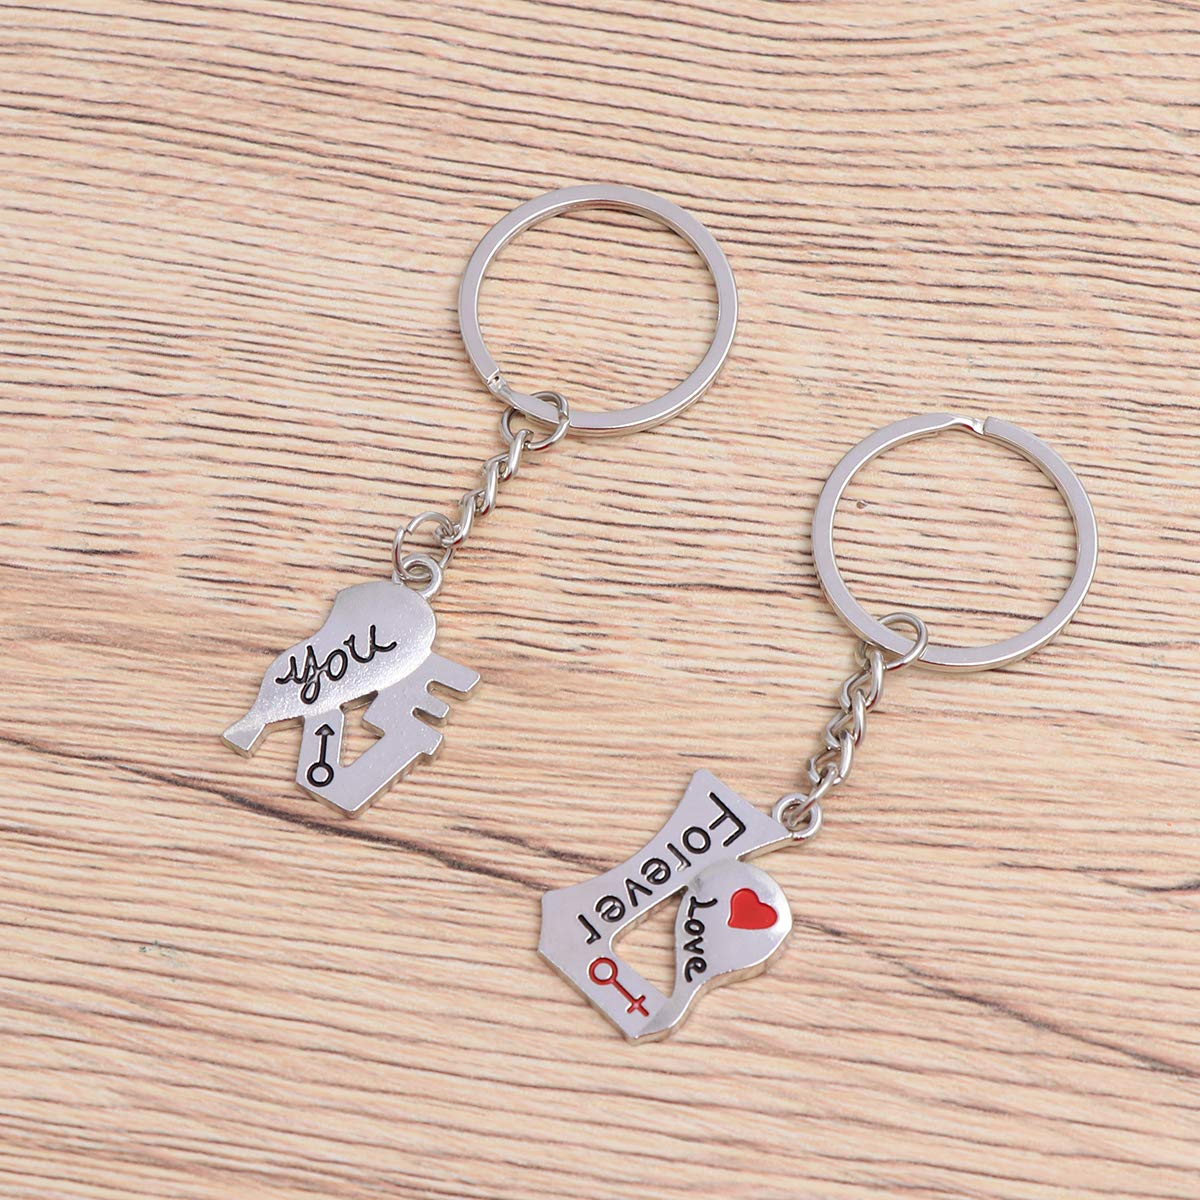 Amosfun Forever Love You Couple Lovers Heart Shaped Keychain Set Valentines Day Love Gift Wedding Valentines Day Christmas Birthday Gift